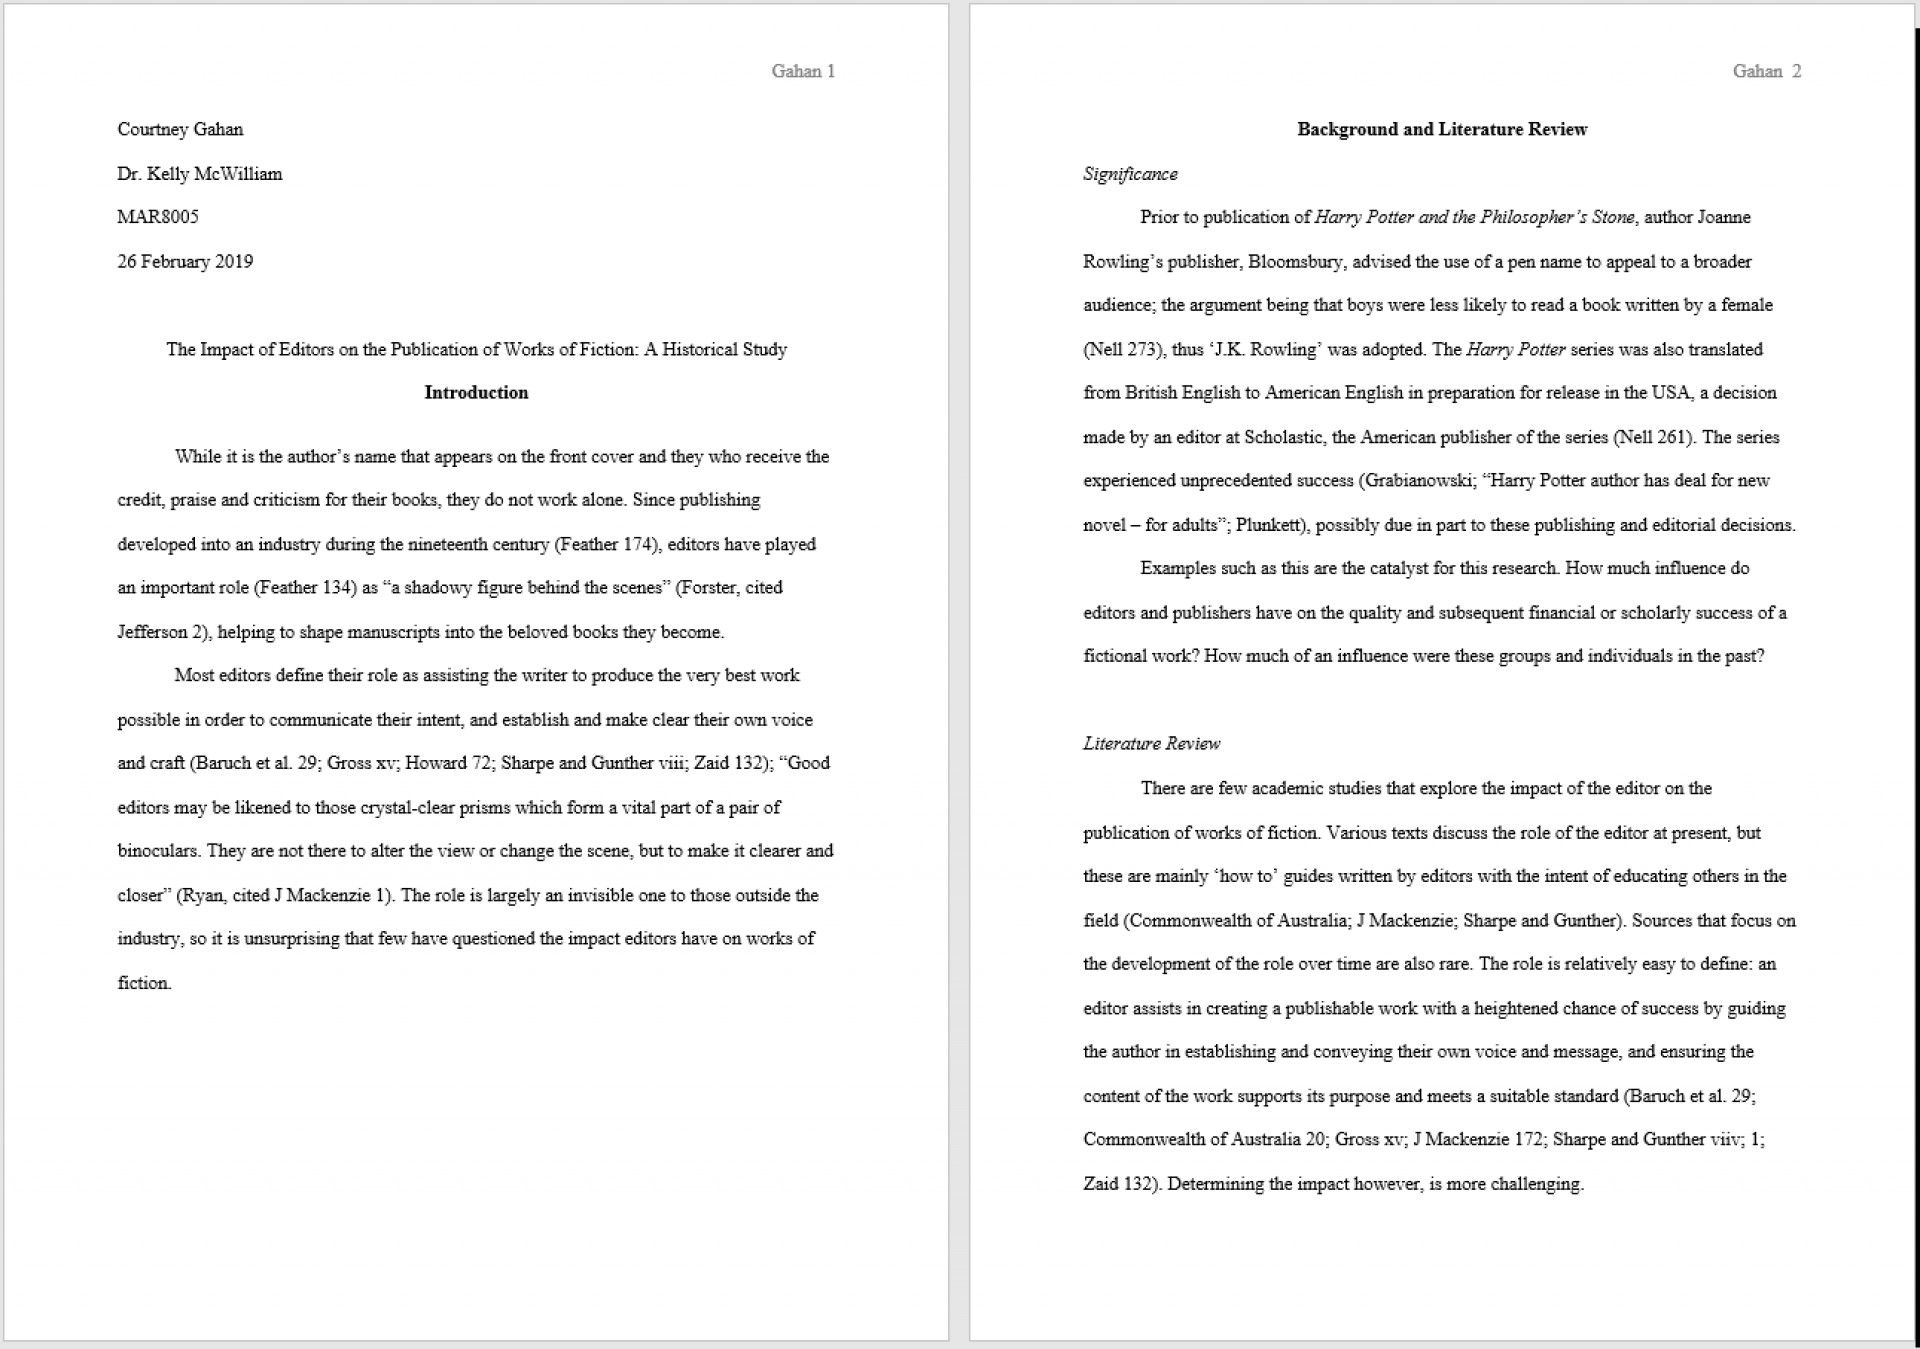 013 How Do You Cite Research Paper In Mla Format Imposing A Website To Things 1920